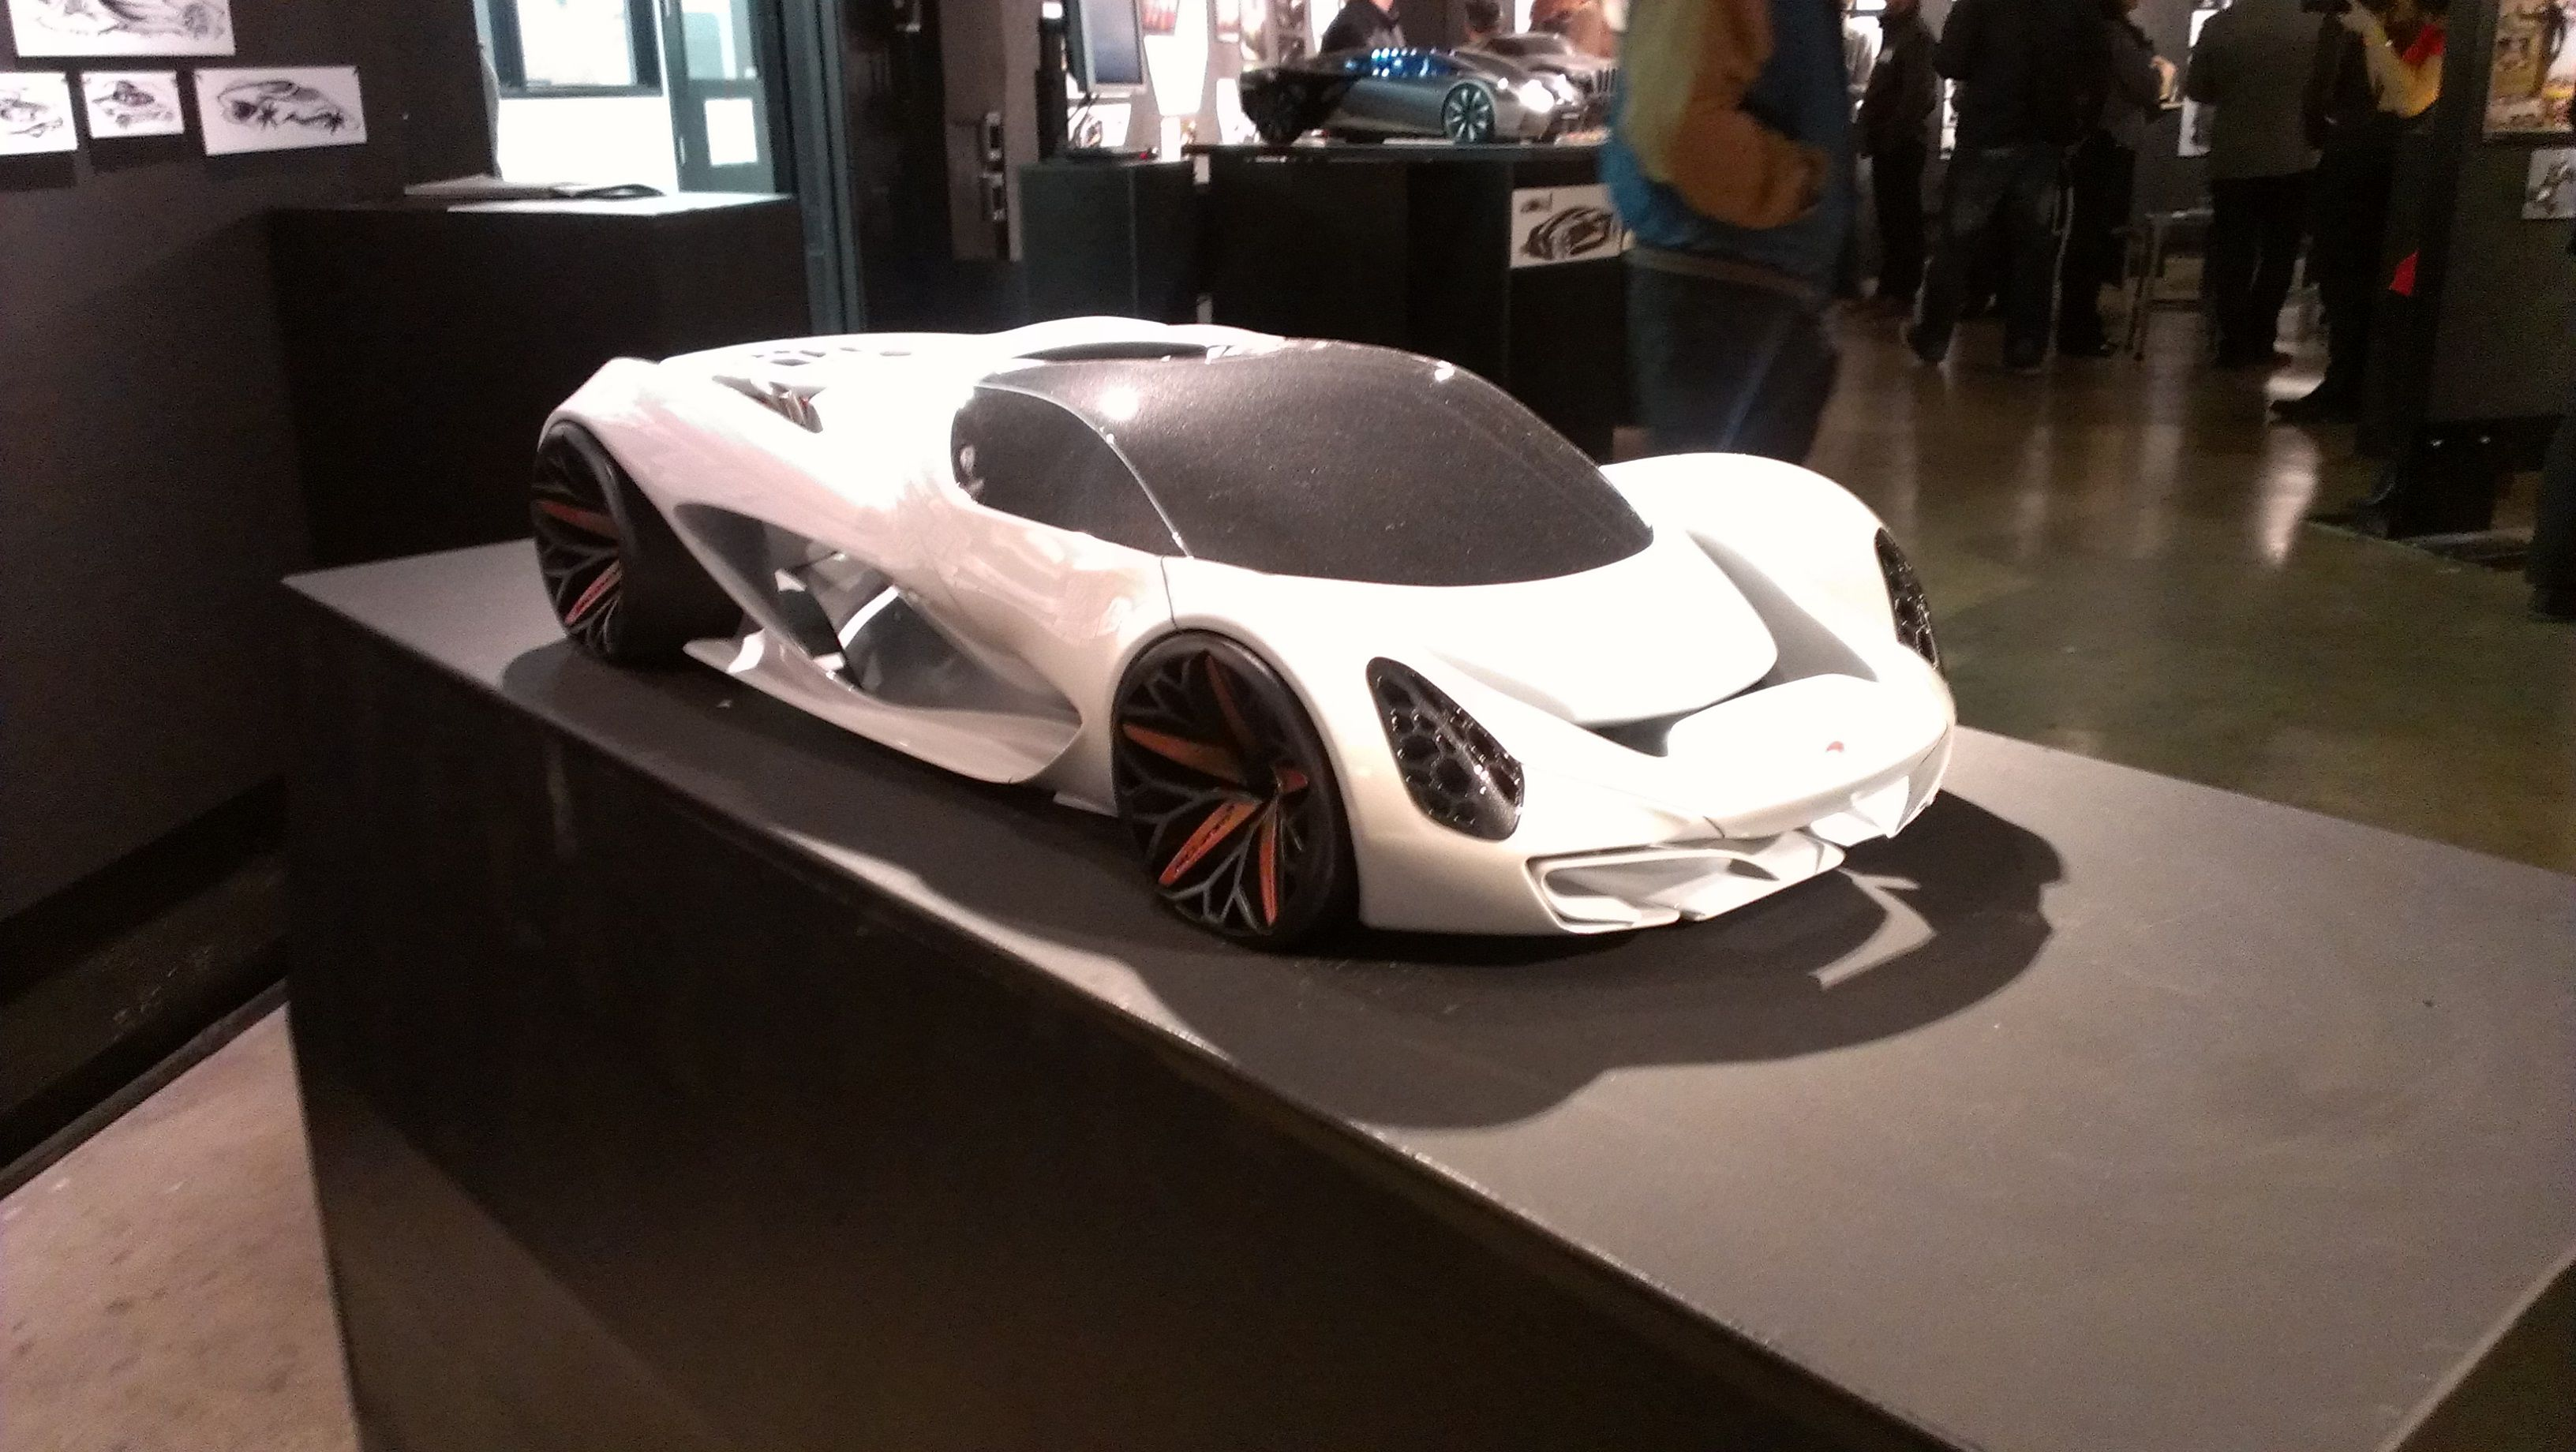 Art Center College Of Design Graduation Show December 2017 The Bmw I1 Is An Electric Singleseater Trikecar Concept By Designer